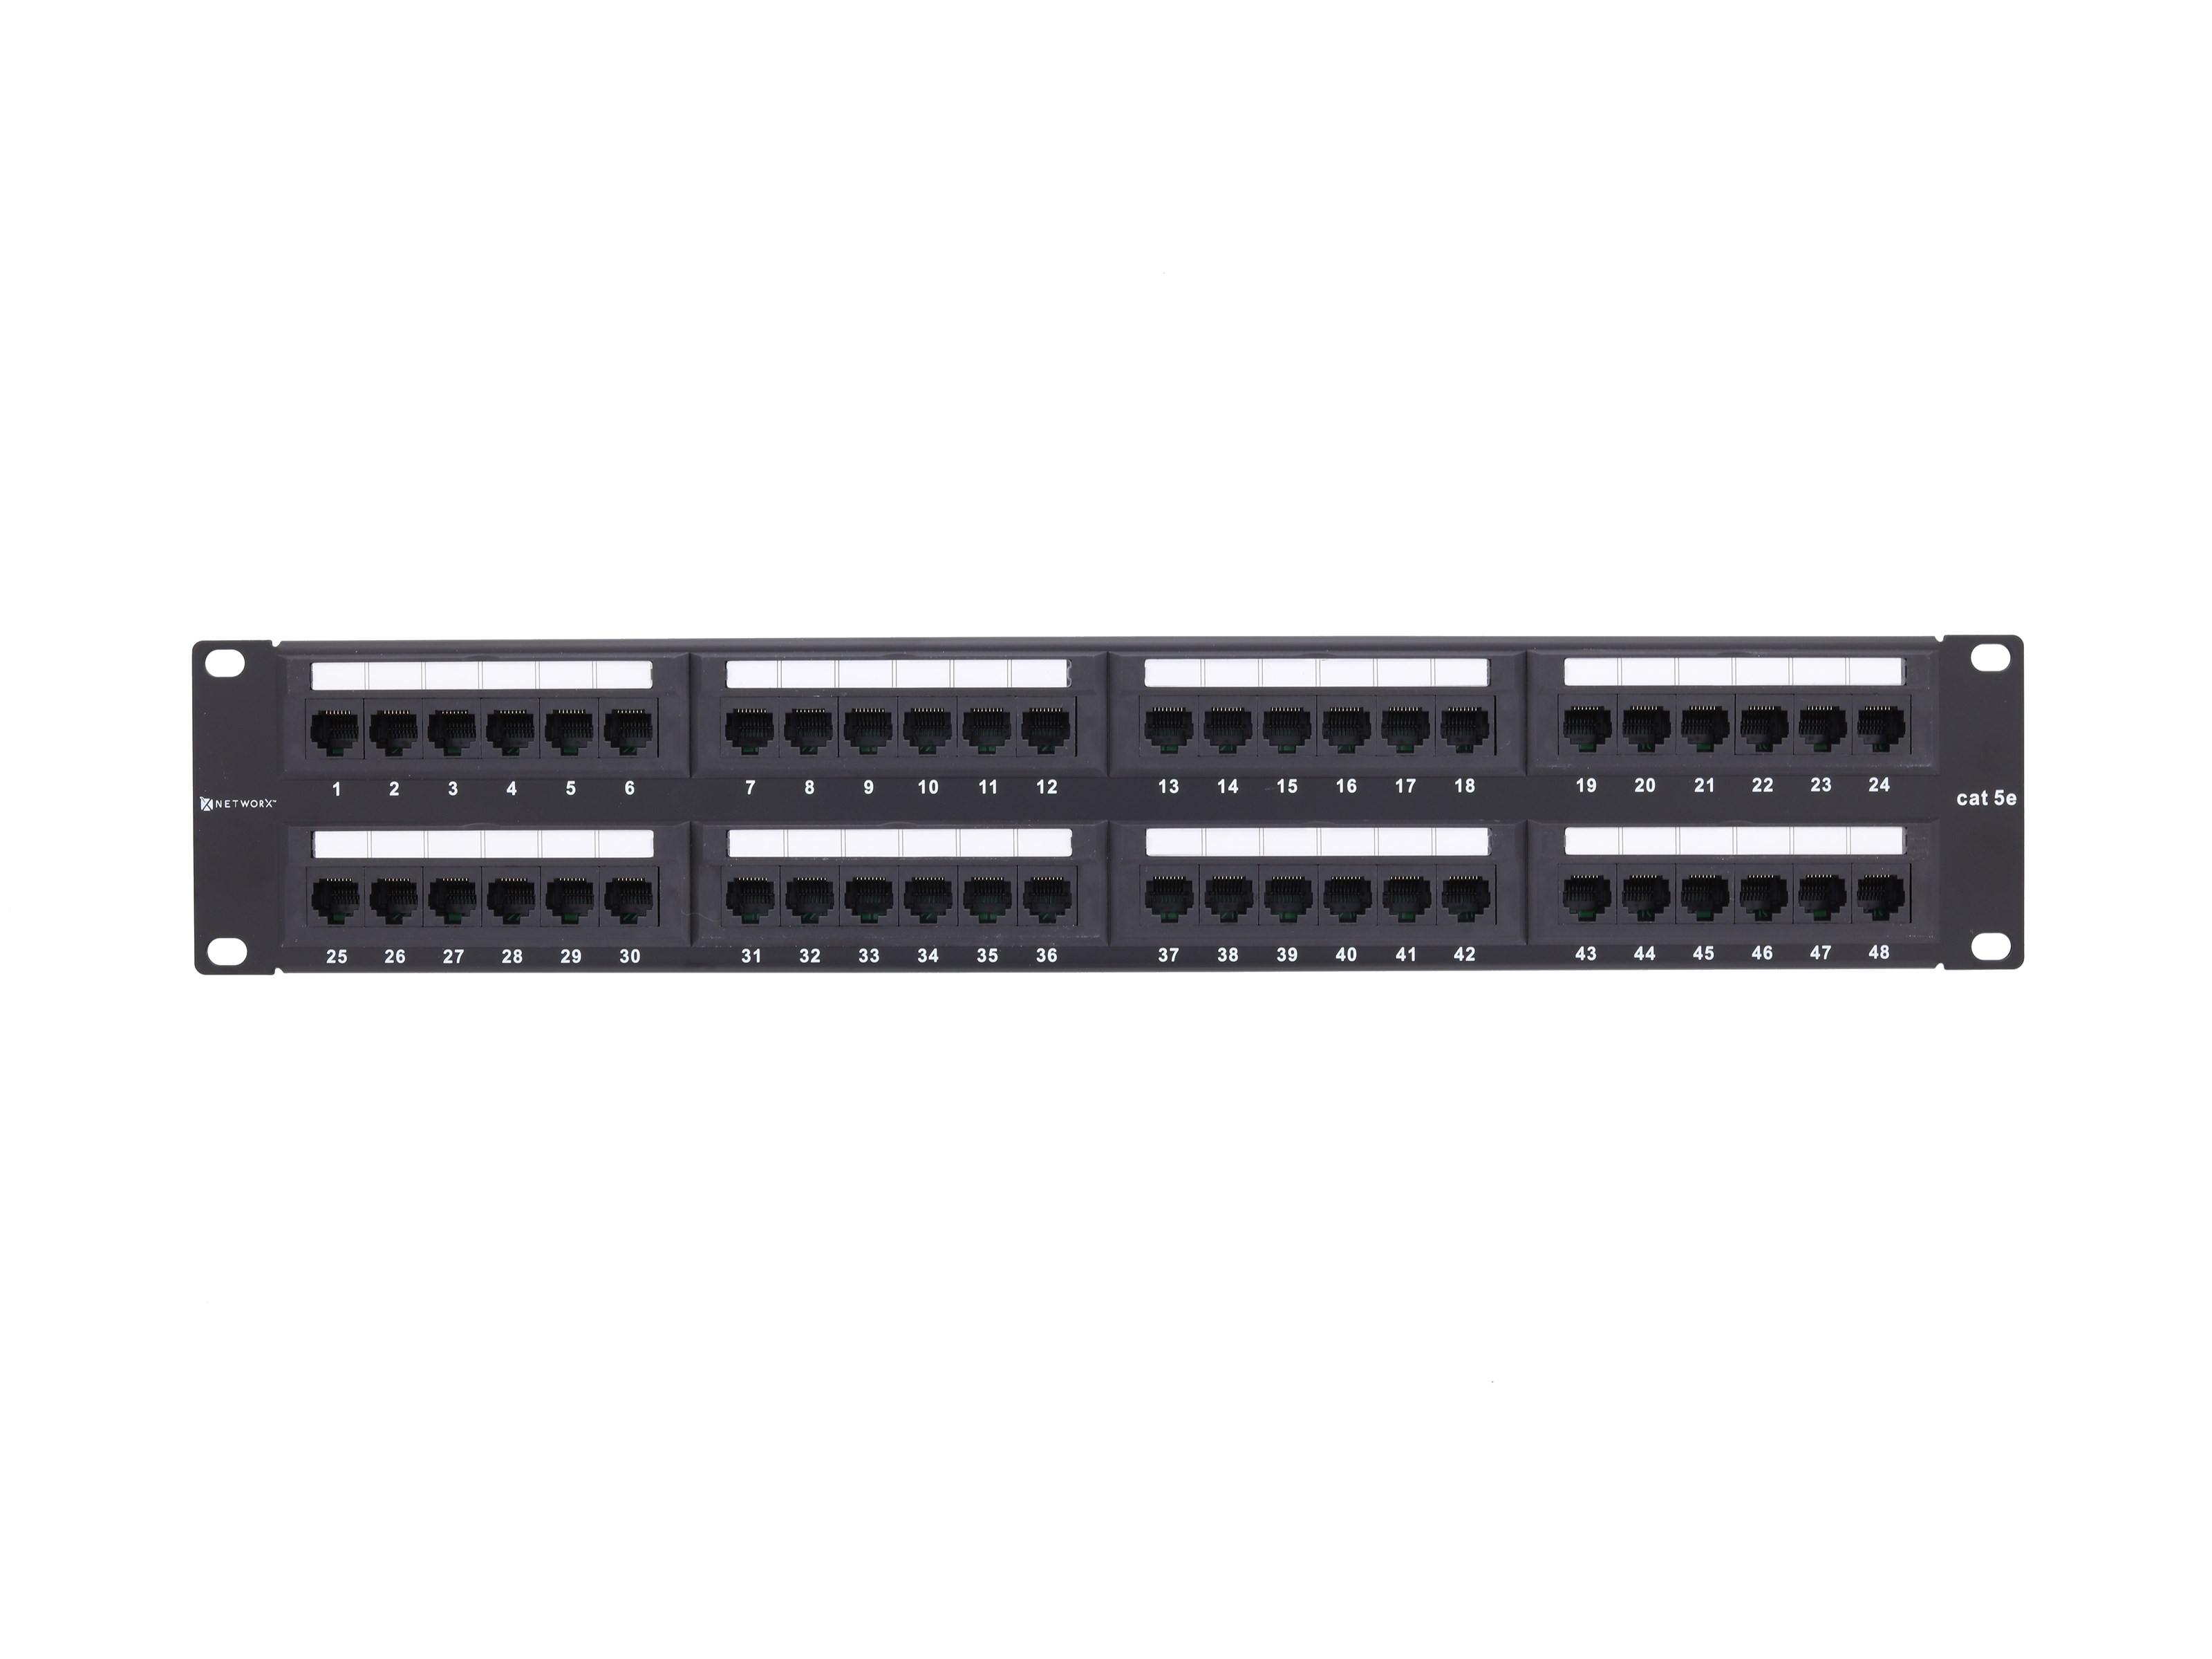 telephone patch panel wiring diagram ford 8n 12v 48 port cat5e rack mount 2u computer cable